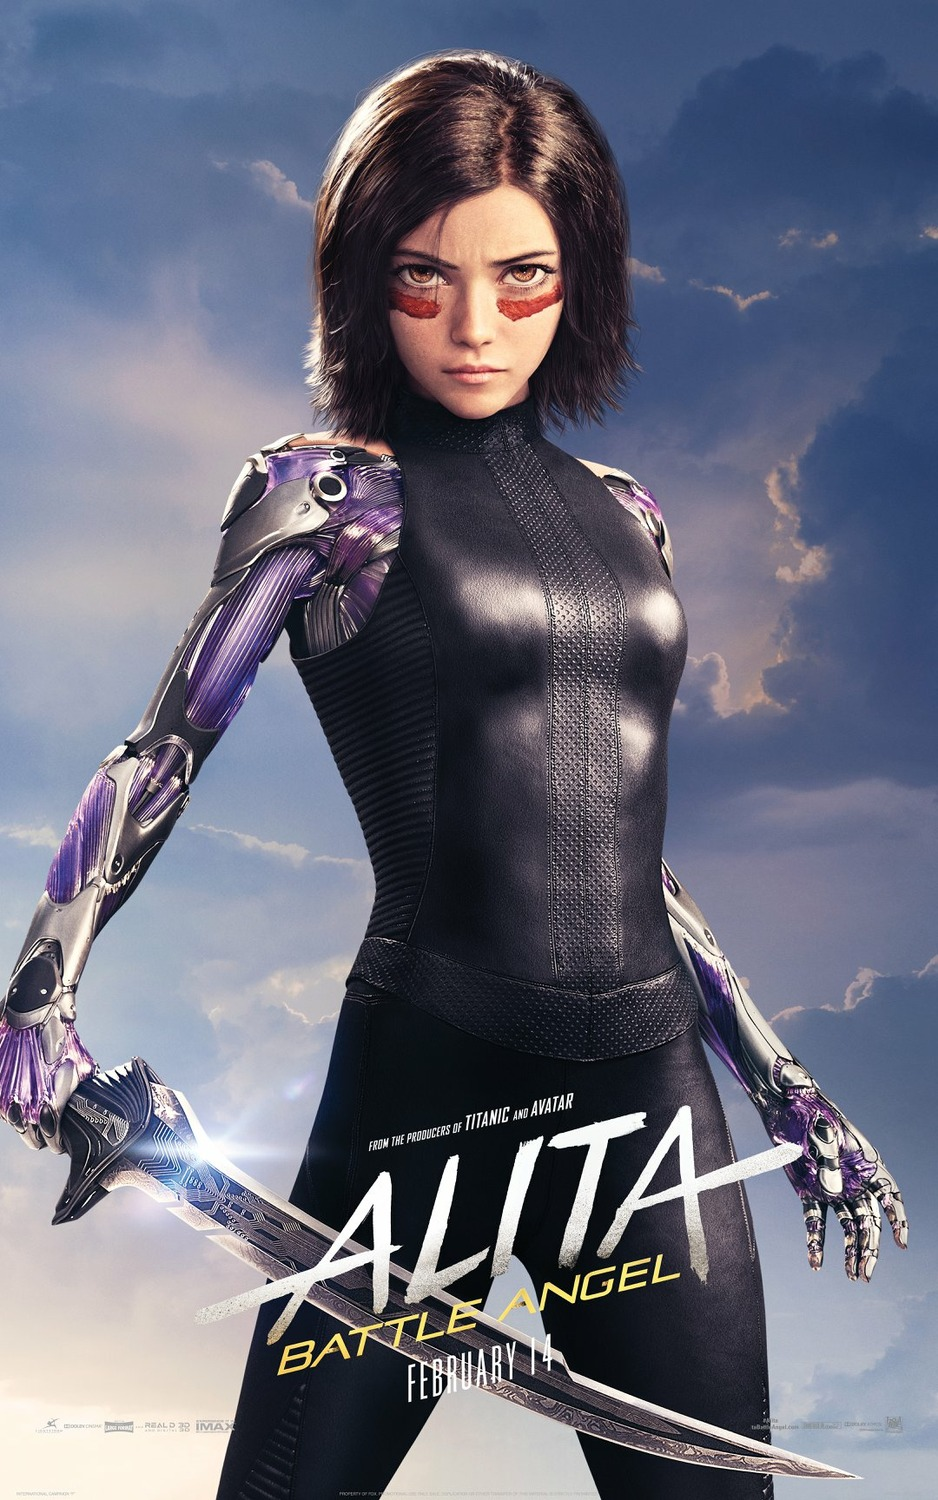 szmk_alita_battle_angel_harc_angyala_1.jpg